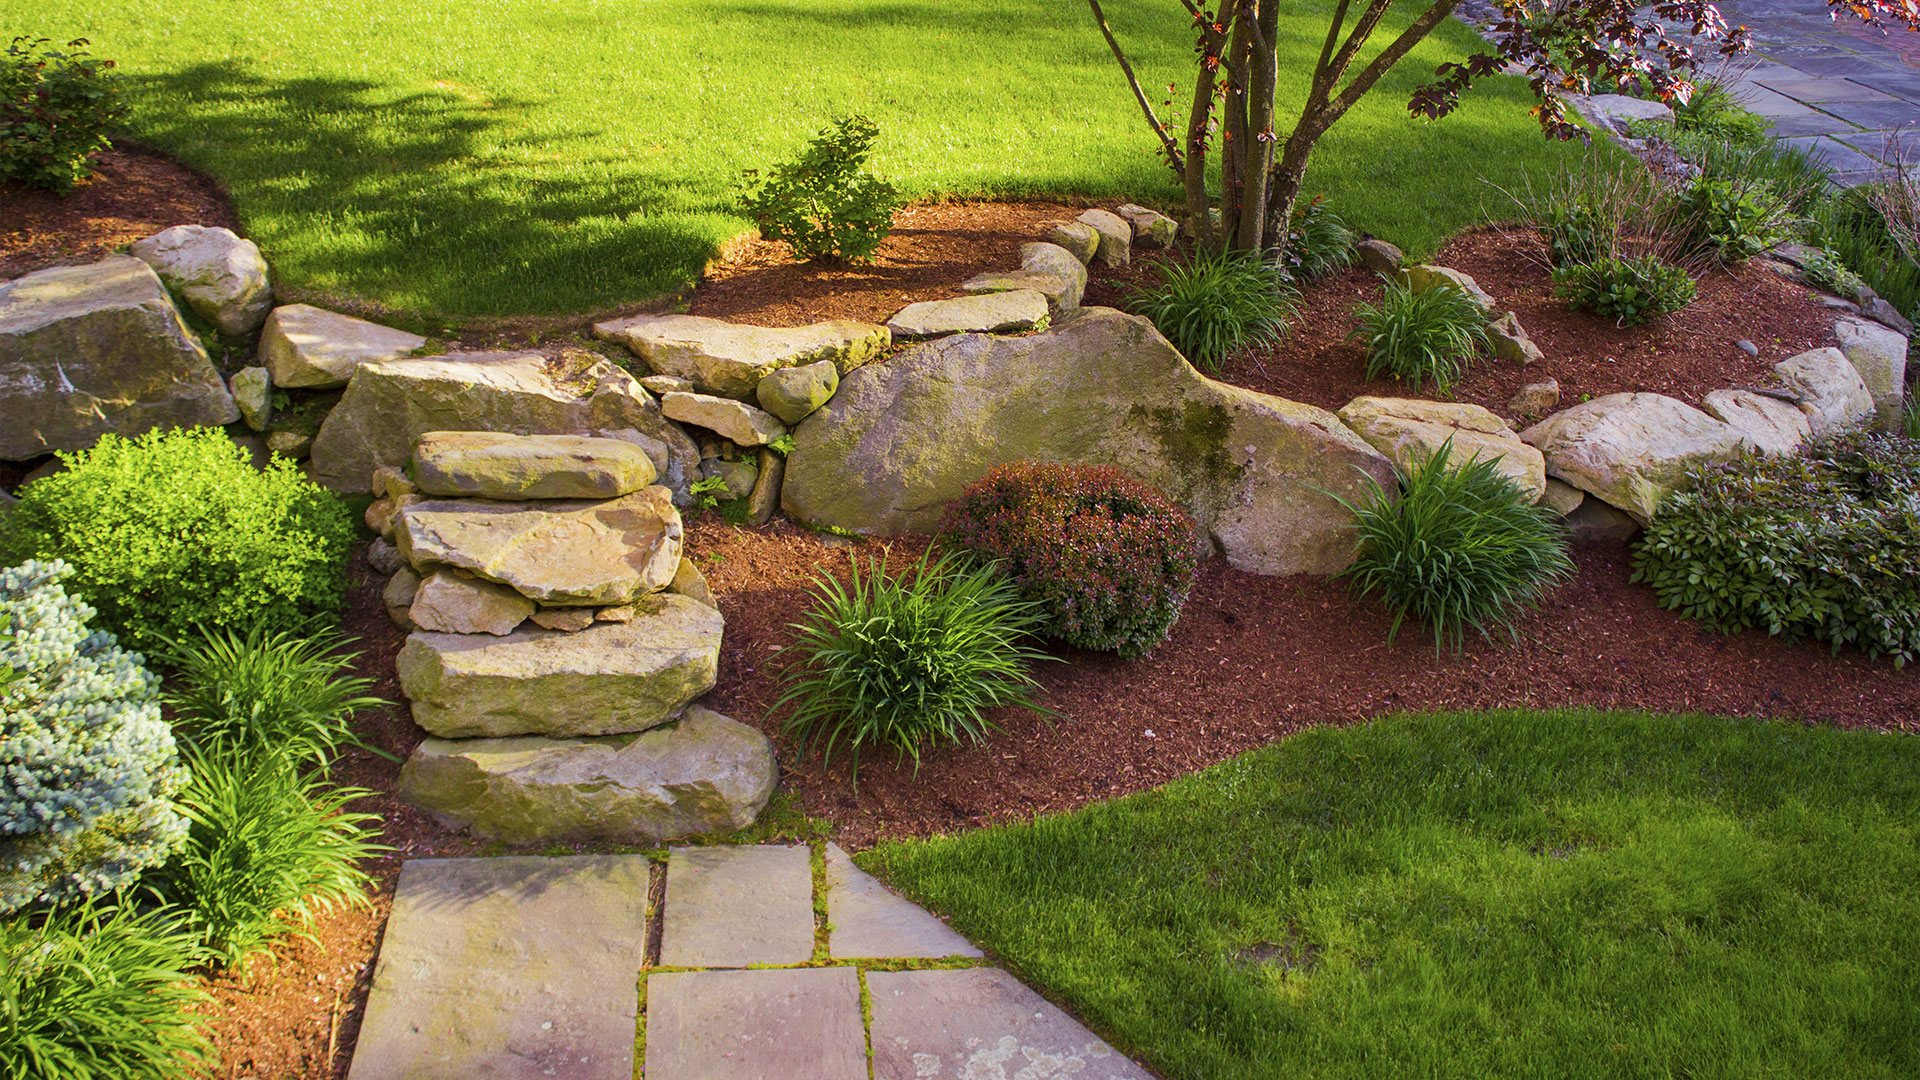 Home glen allen landscaping weed control and lawn care for Garden design pictures